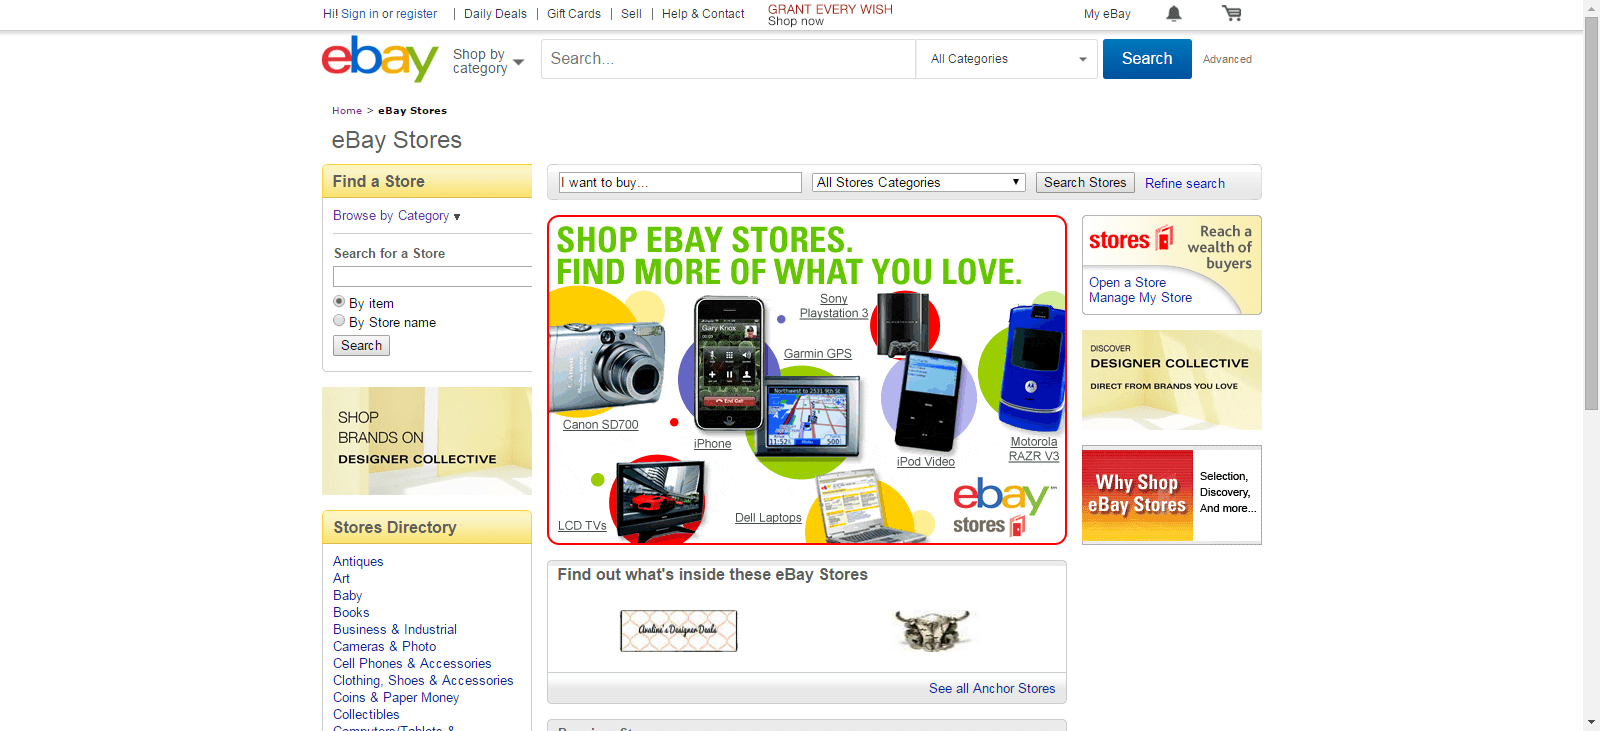 eBay search: Advanced search